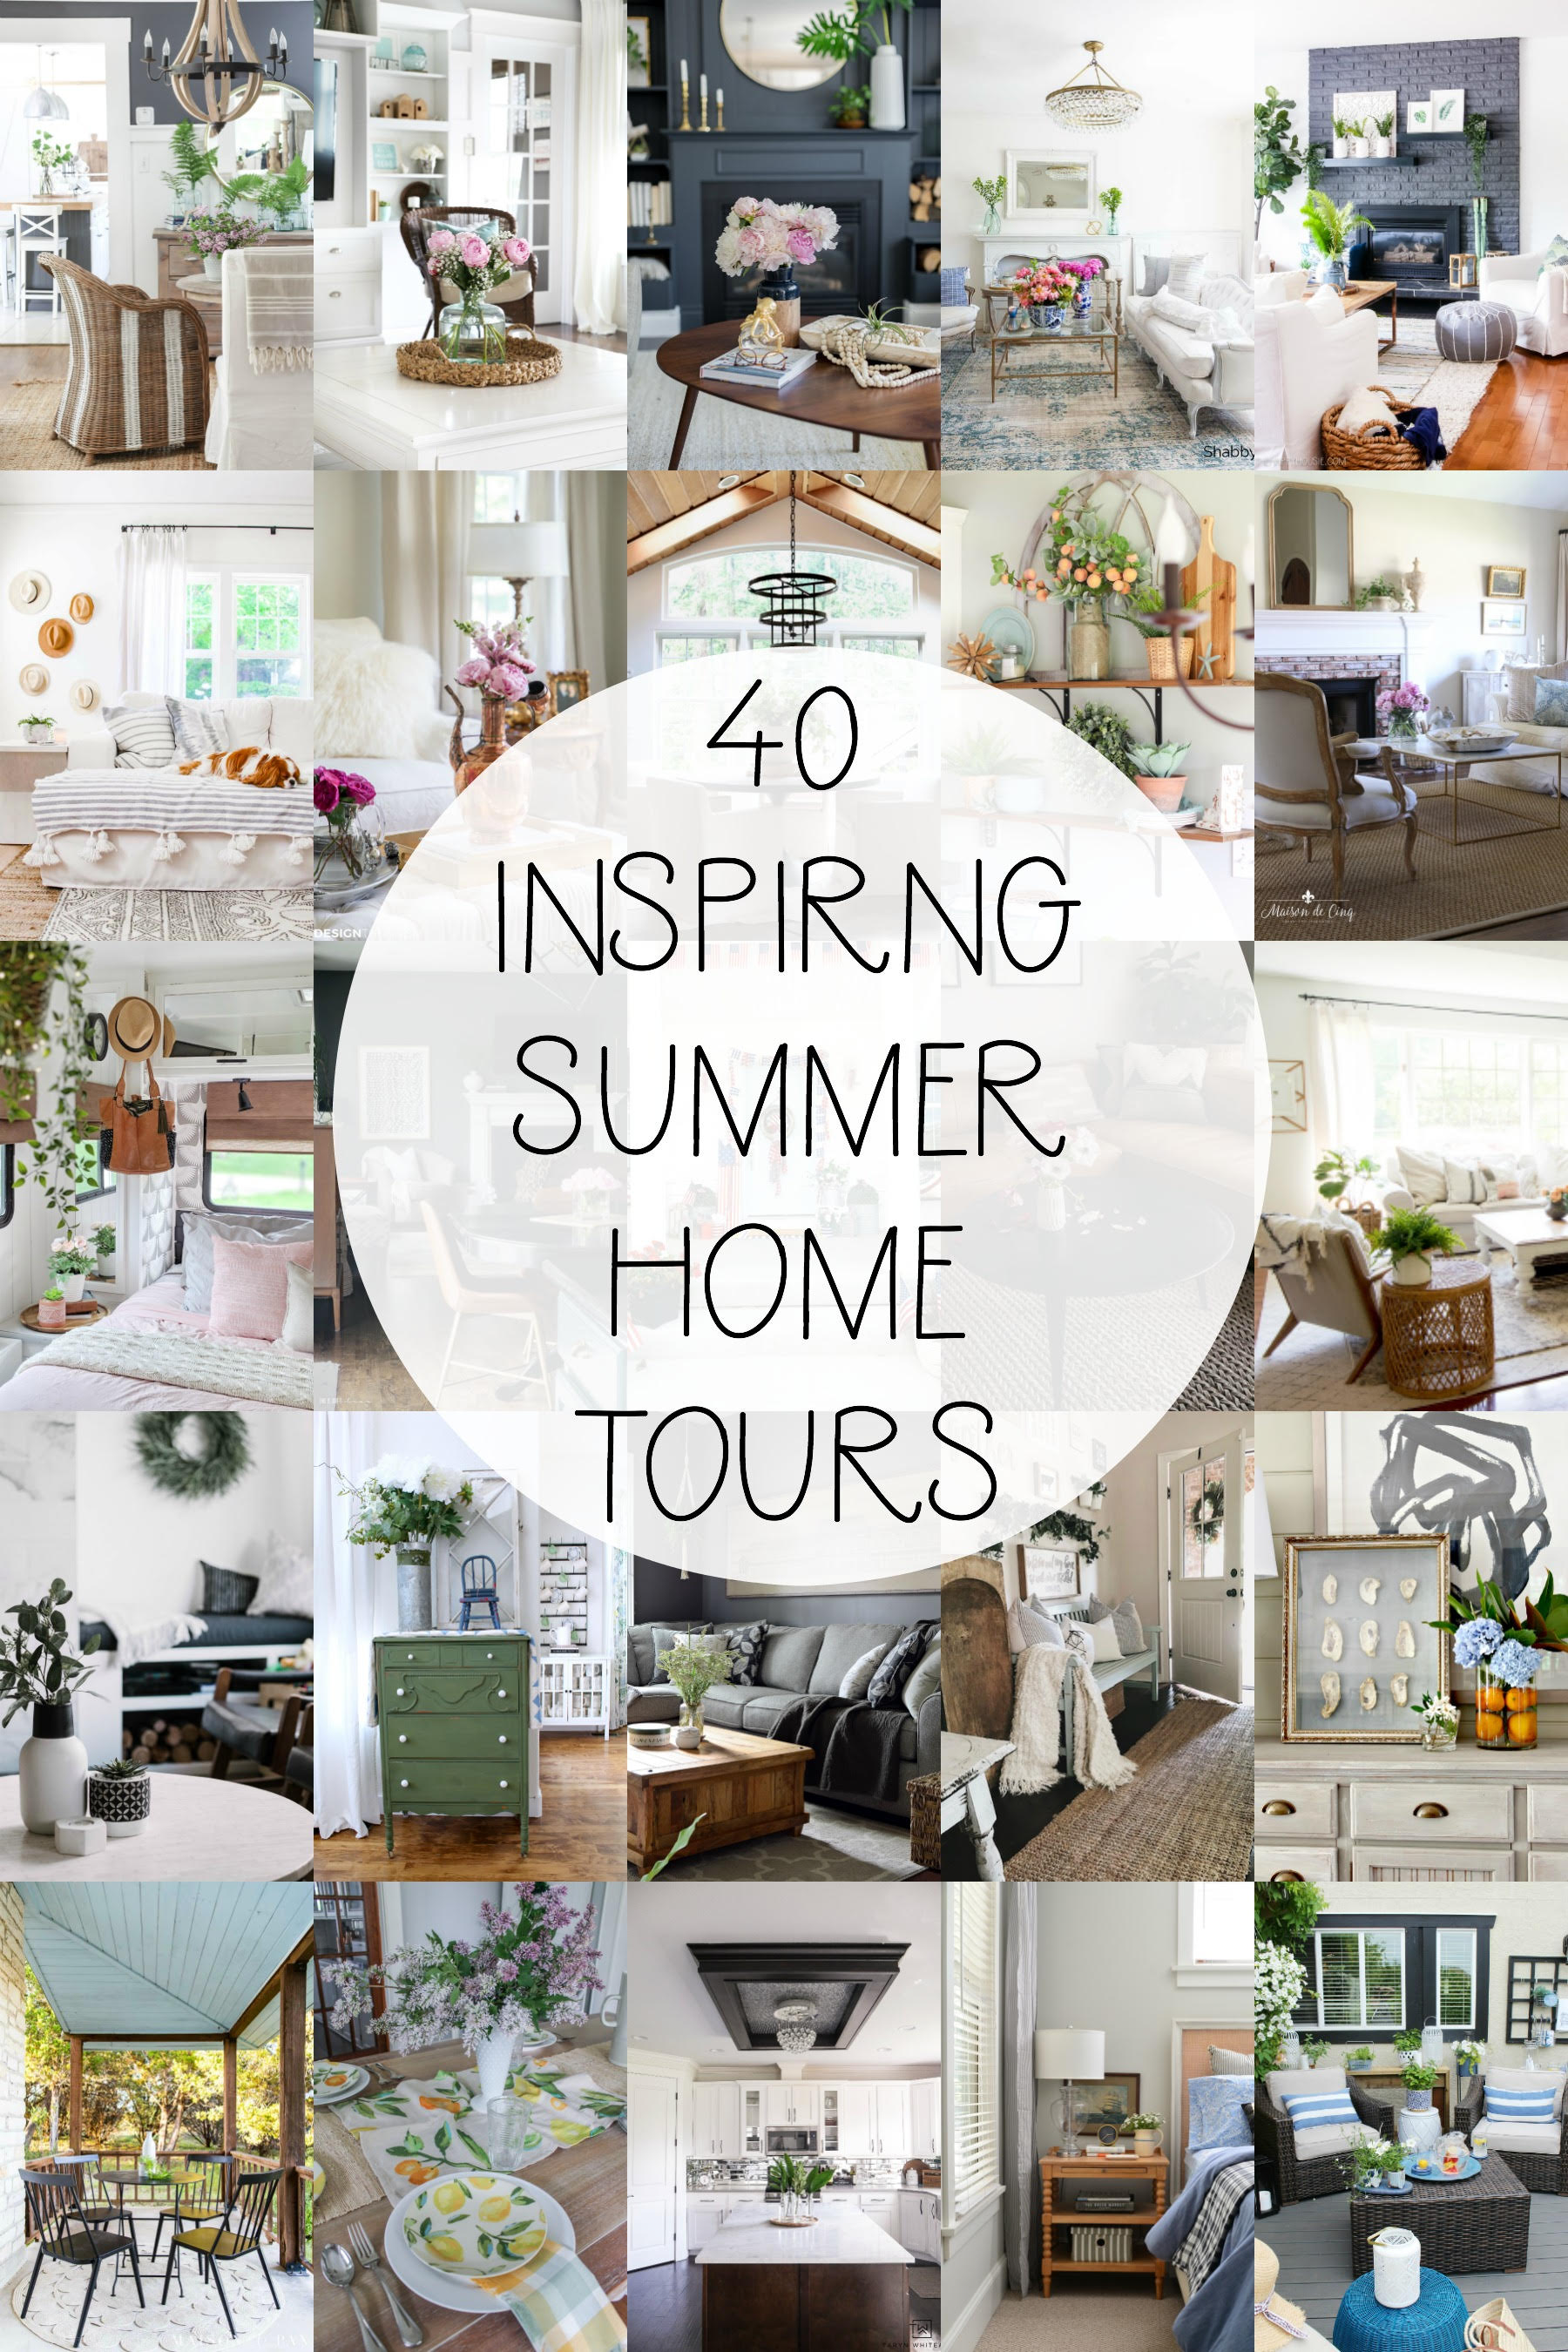 40 Inspiring Summer Home Tours